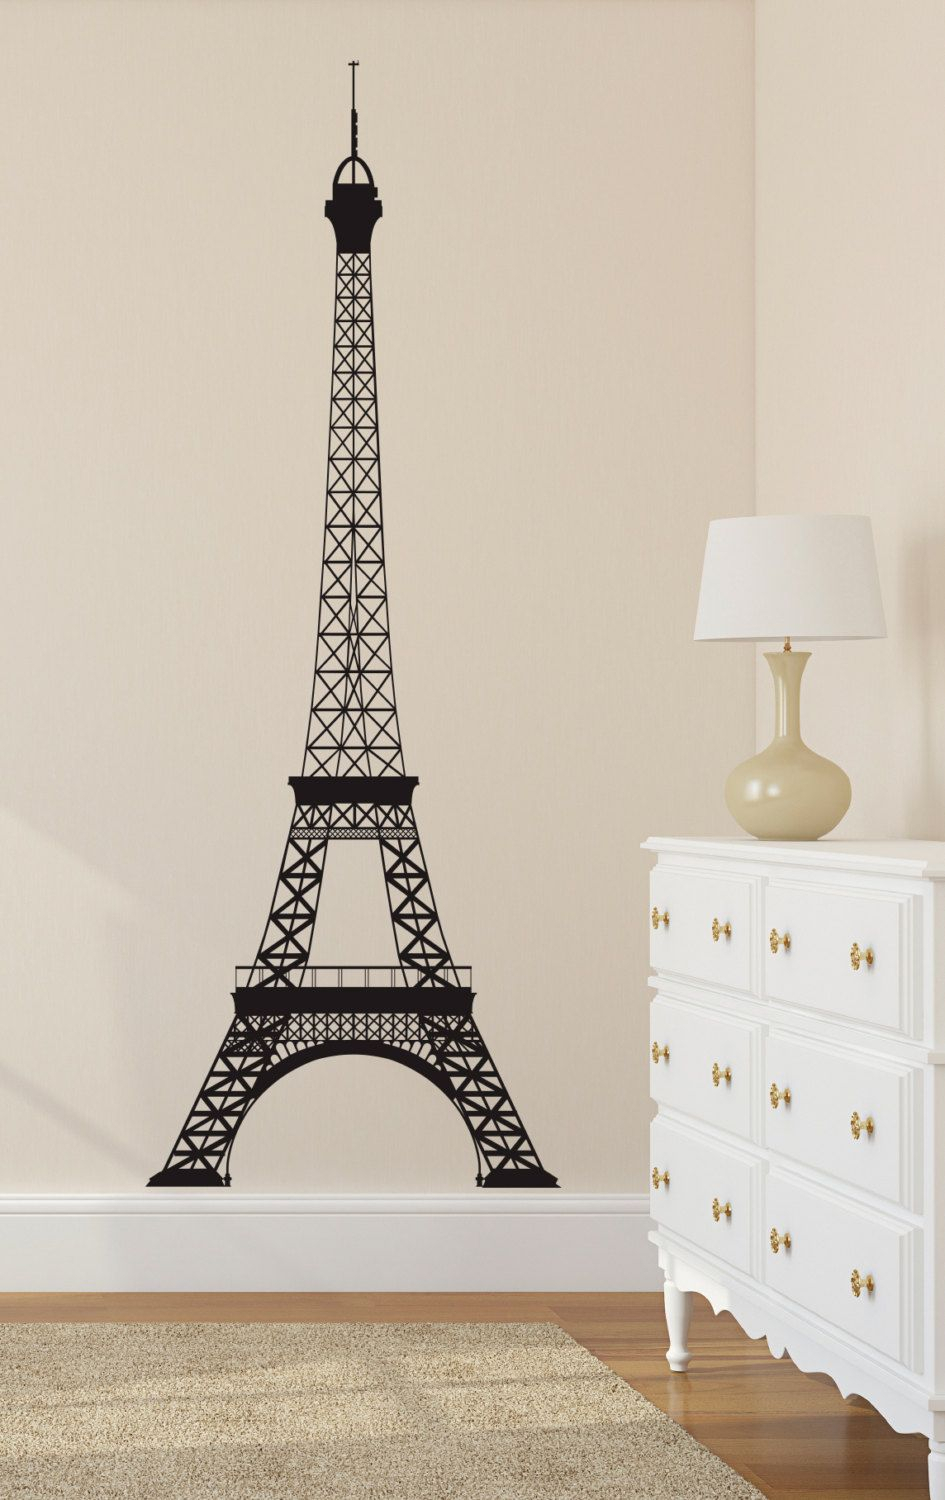 Eiffel Tower Wall Decal Paris Wall Decal Wall Decor La Tour Throughout Latour Wall Decor (Photo 7 of 30)